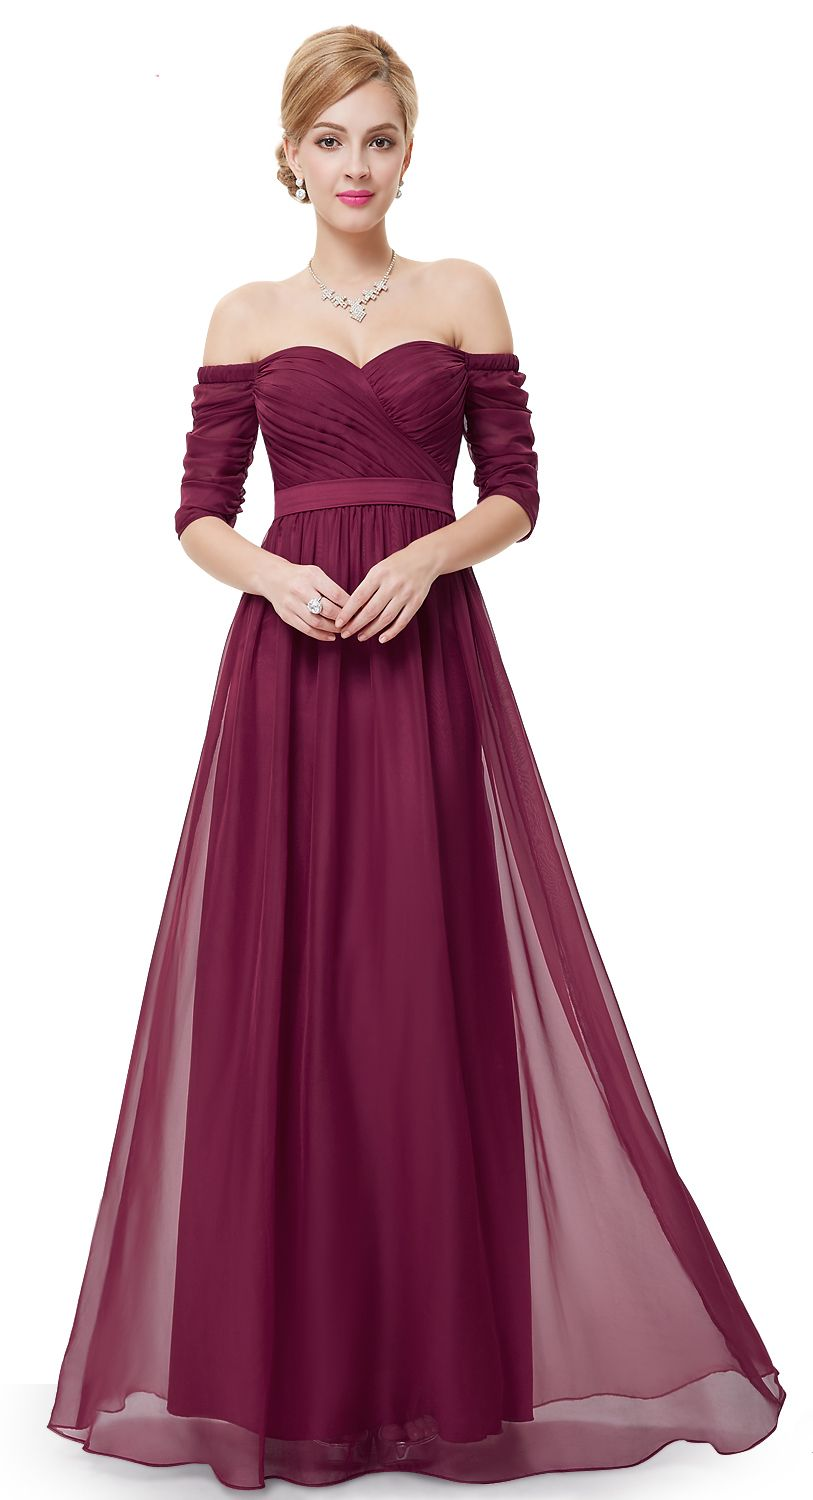 Strapless half sleeve long vintage eveningparty dressprom dress